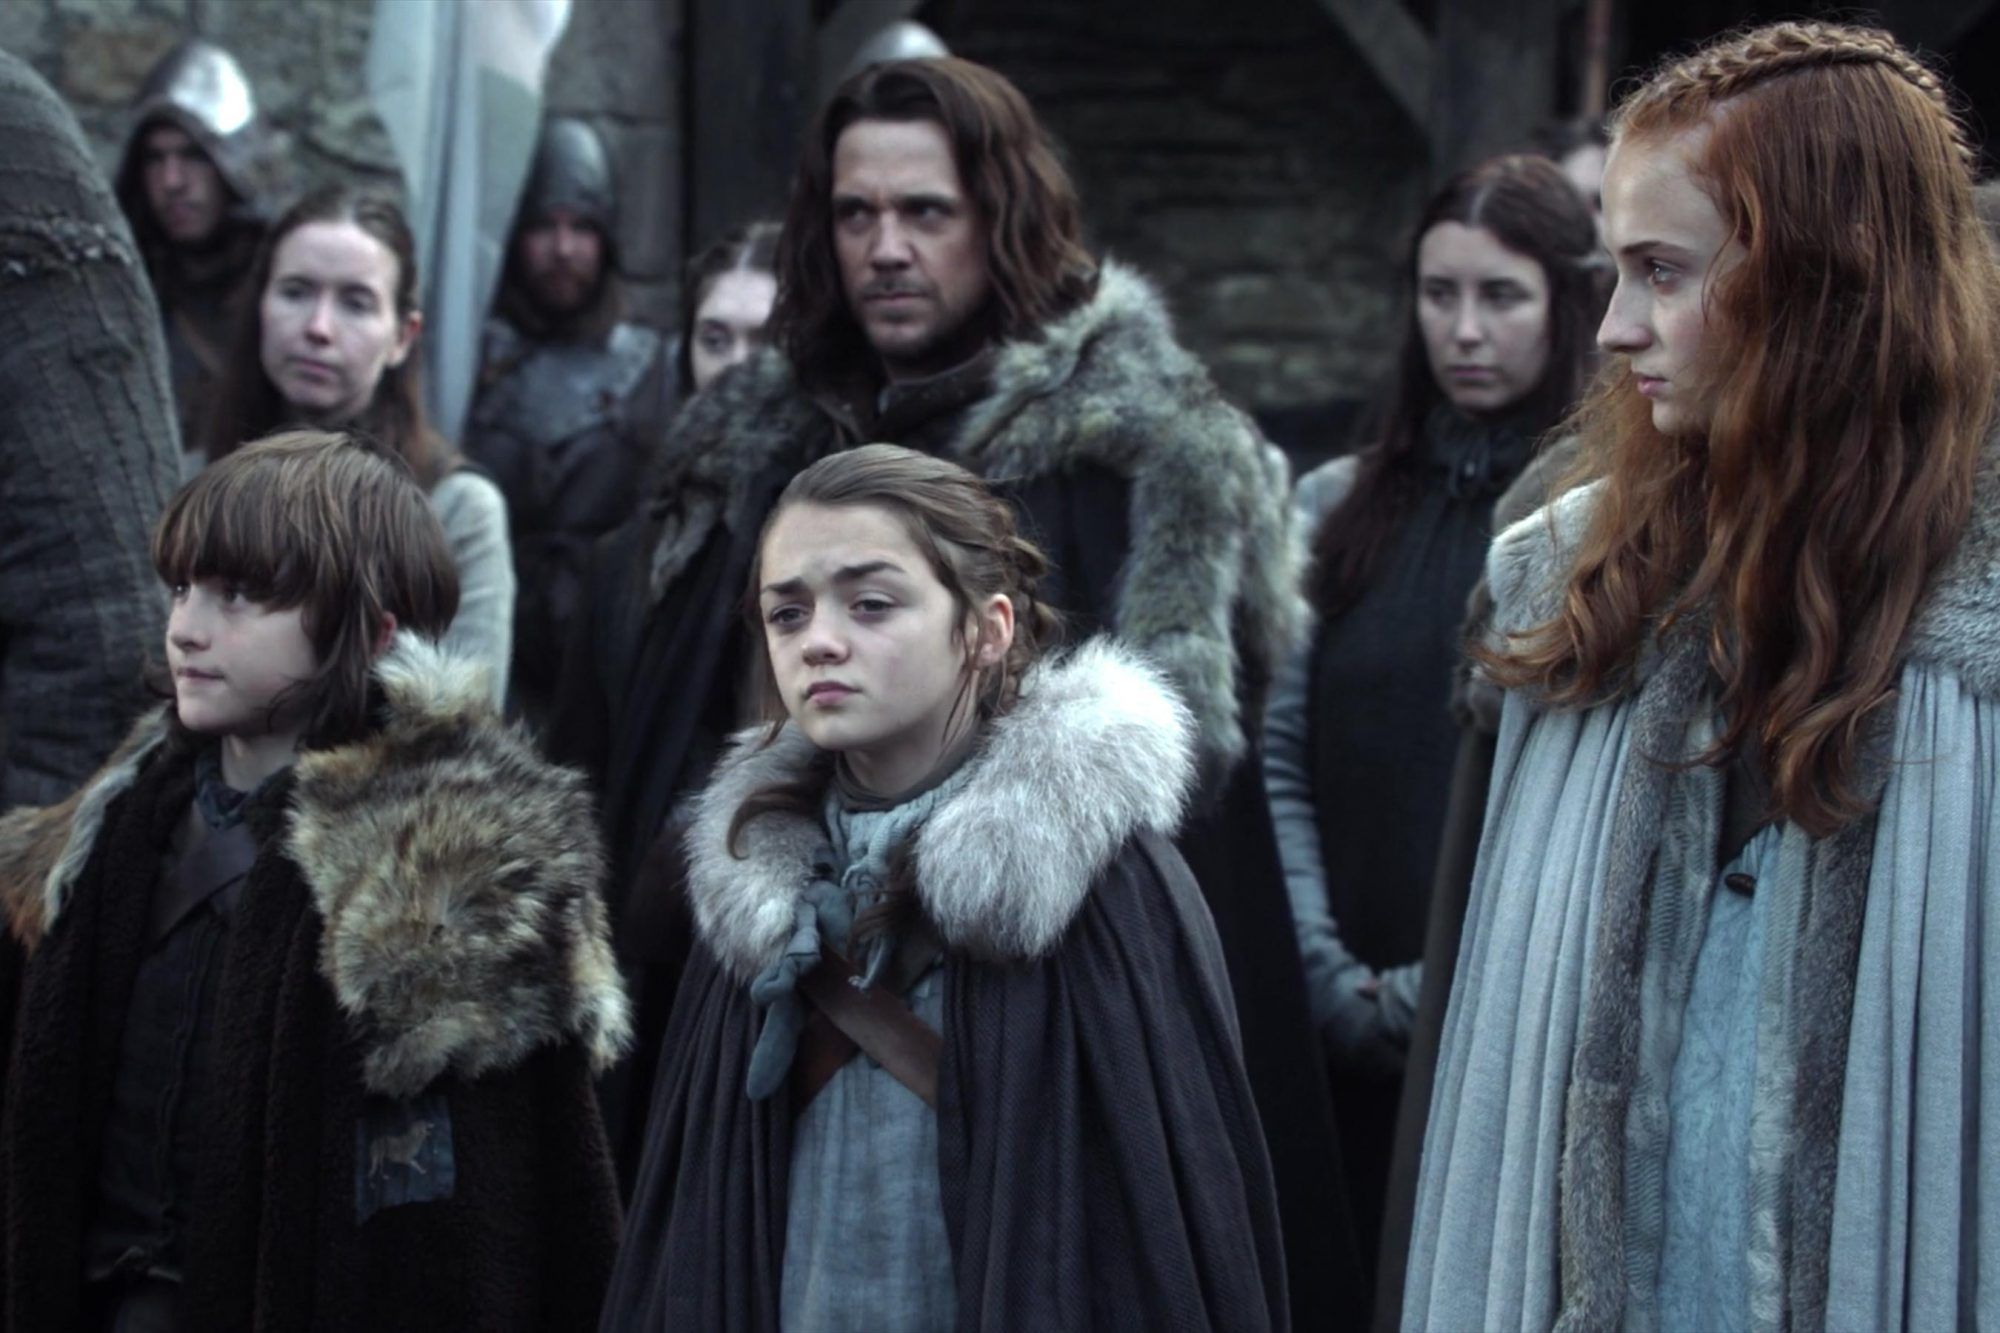 Game of Thrones (screen grab) Winter Is Coming Season 1, Episode 1 Isaac Hempstead Wright as Bran Stark, Maisie Williams as Arya Stark, Sophie Turner as Sansa Stark